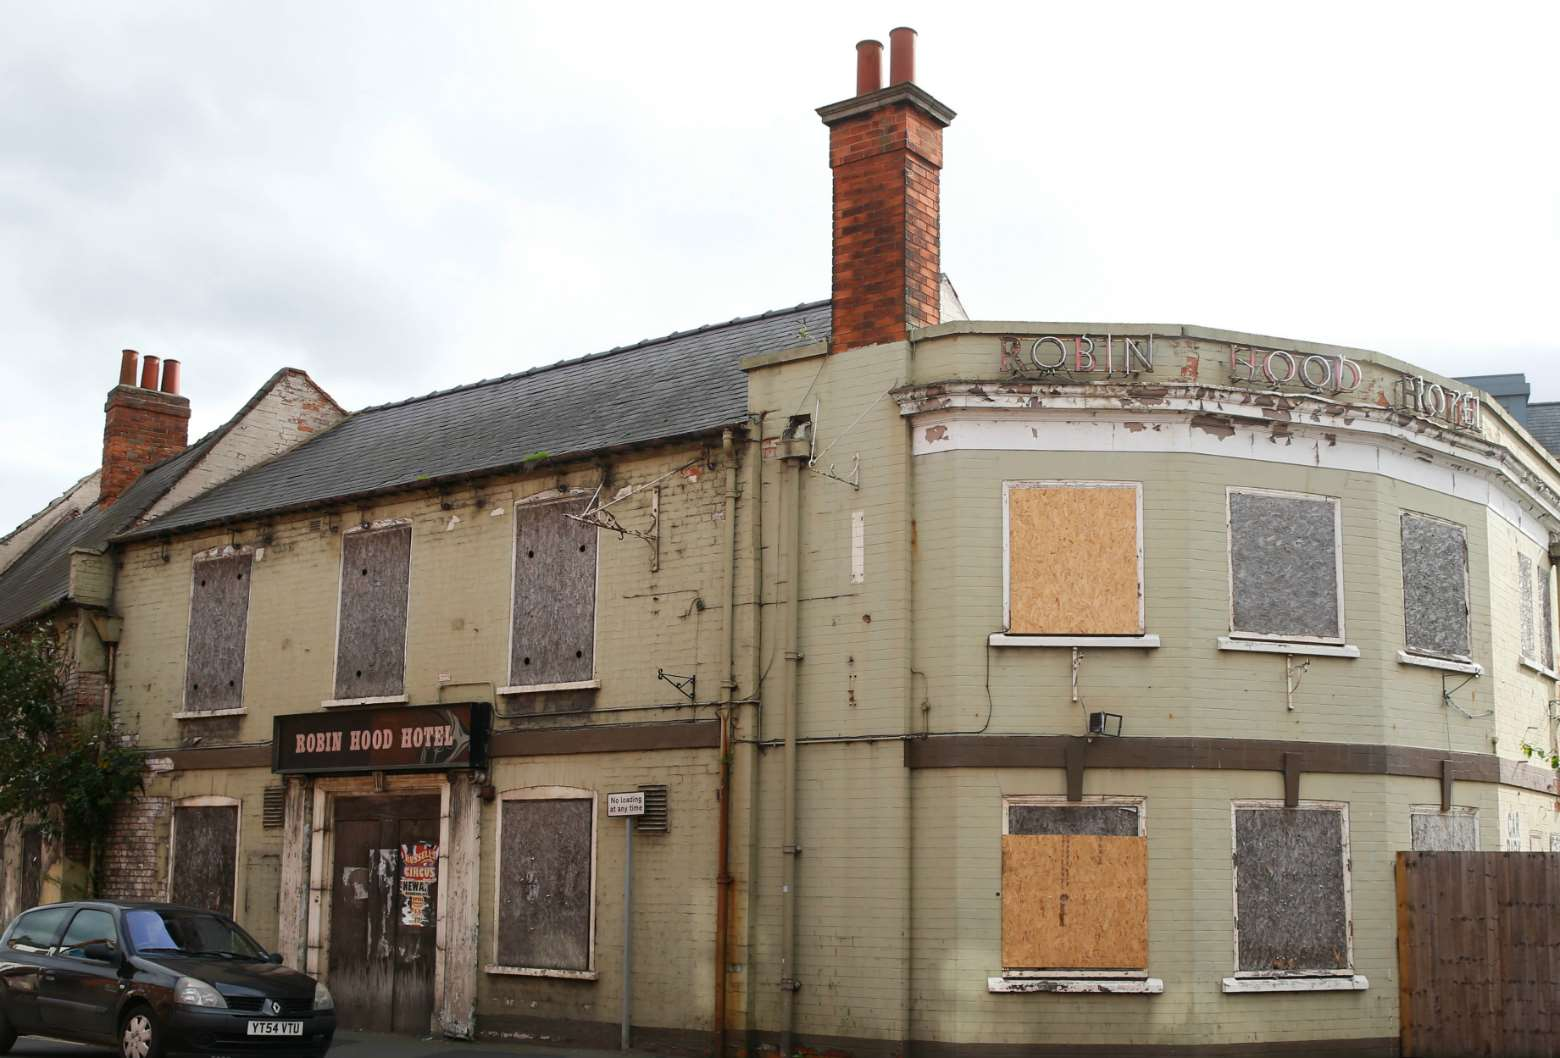 The former Robin Hood Hotel, Newark